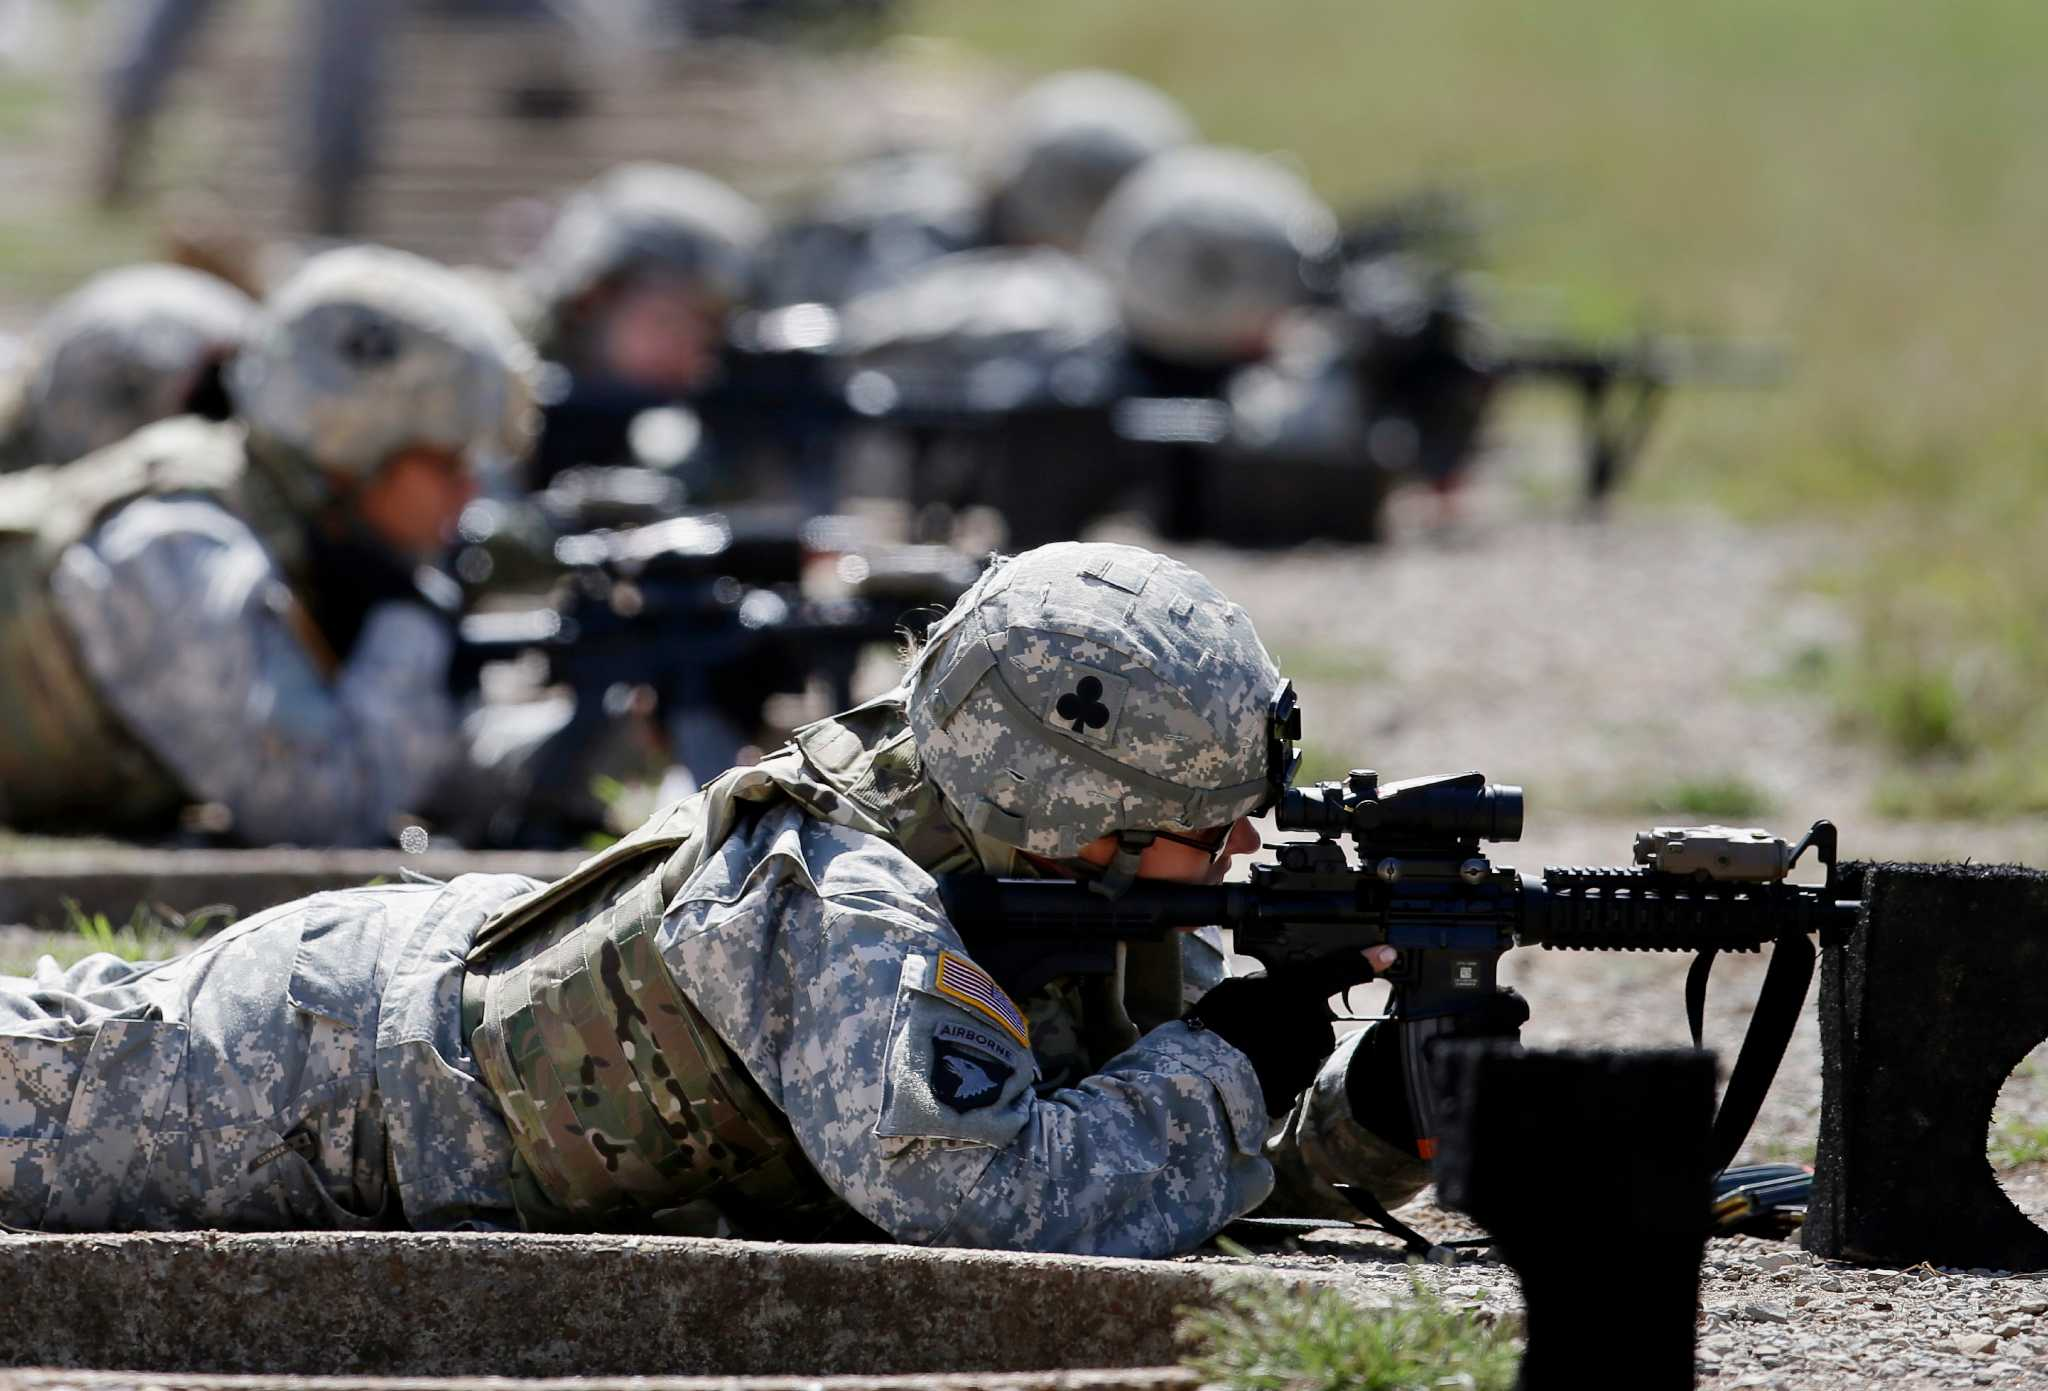 women in military combat assignments The process to open combat jobs to women began in david gilkey/npr for posts and assignments is part of being in the military.